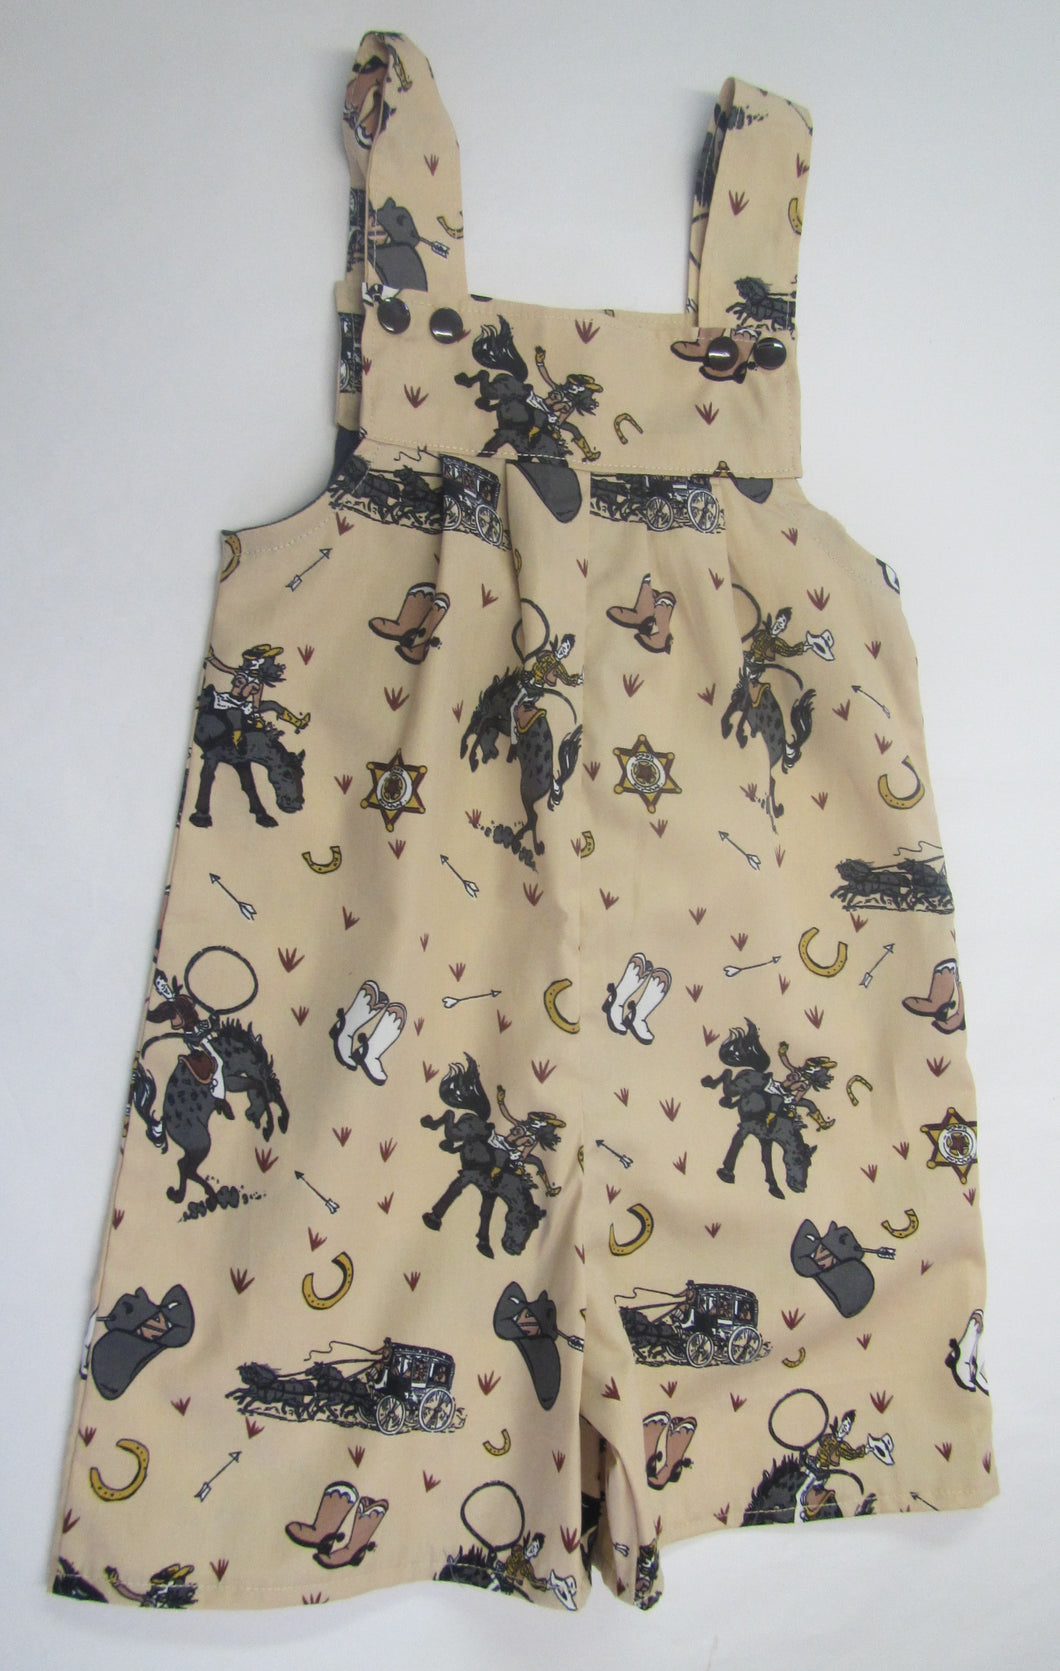 Hand crafted cowboy pattern romper shorts 2-3 years